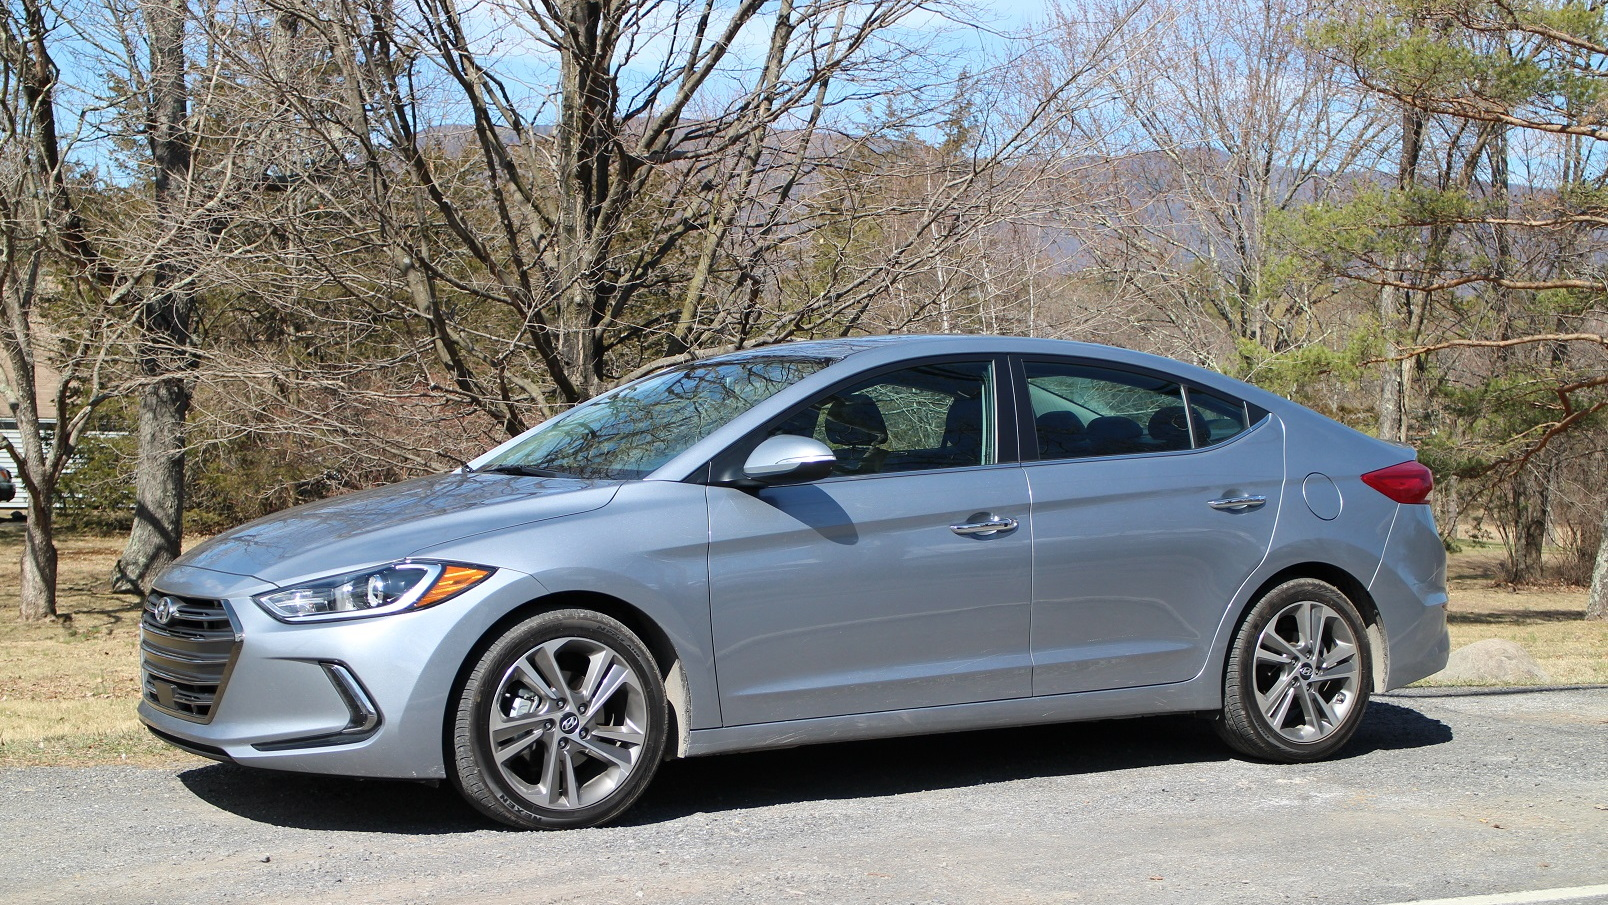 2017 Hyundai Elantra Limited, Catskill Mountains, NY, Apr 2016